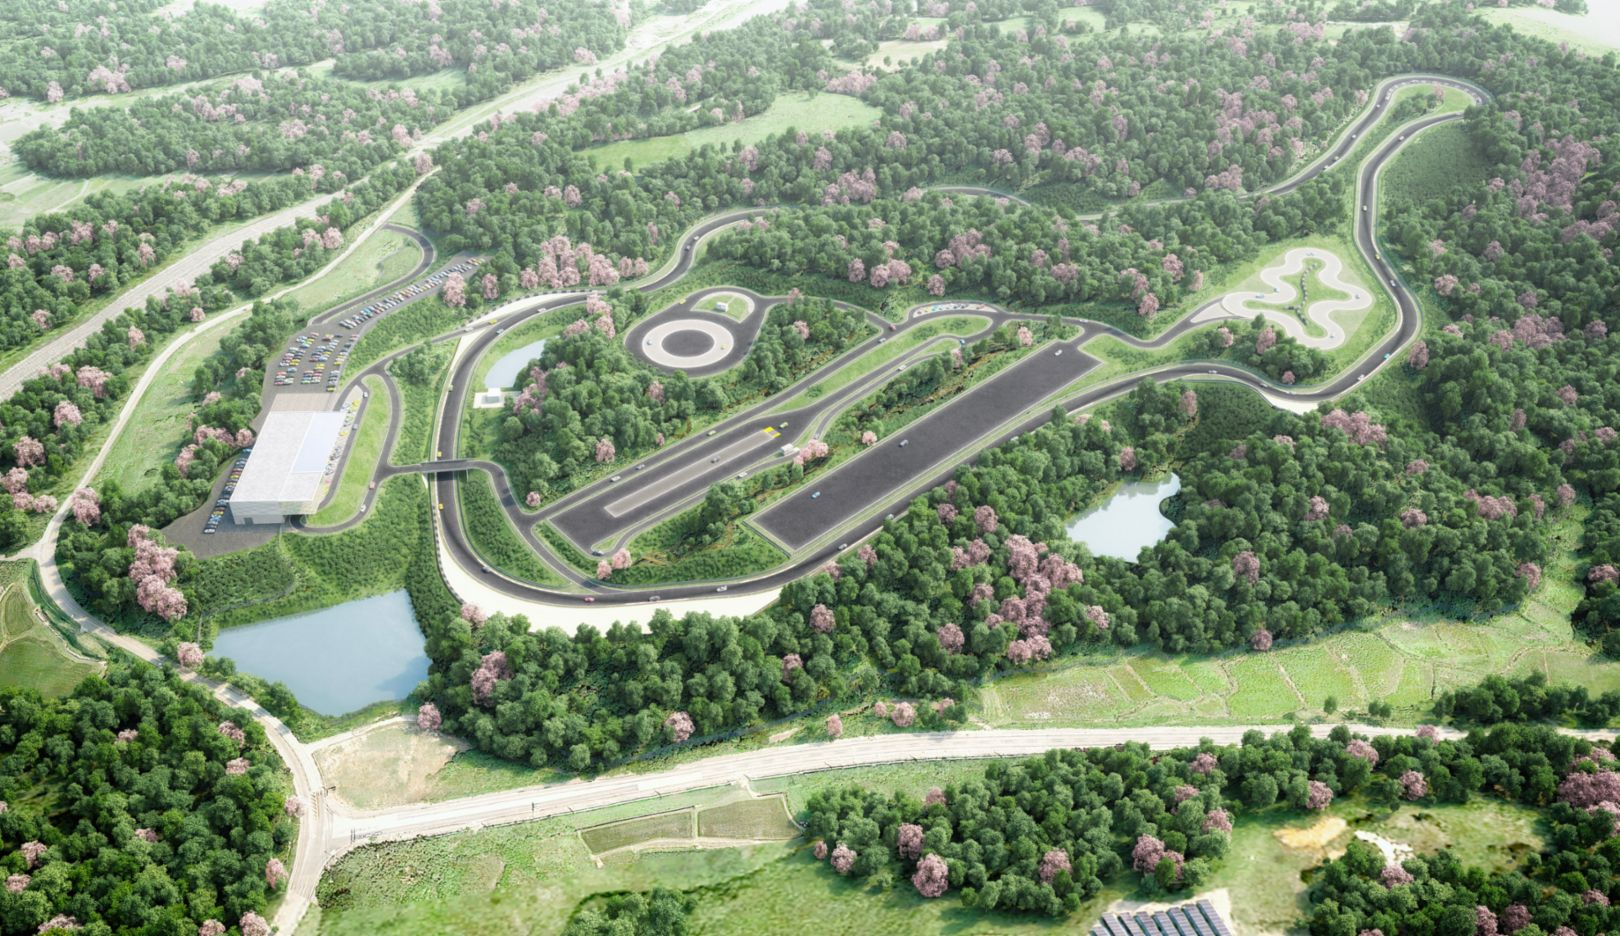 Ninth Porsche Experience Centre to be built in Japan - Image 3